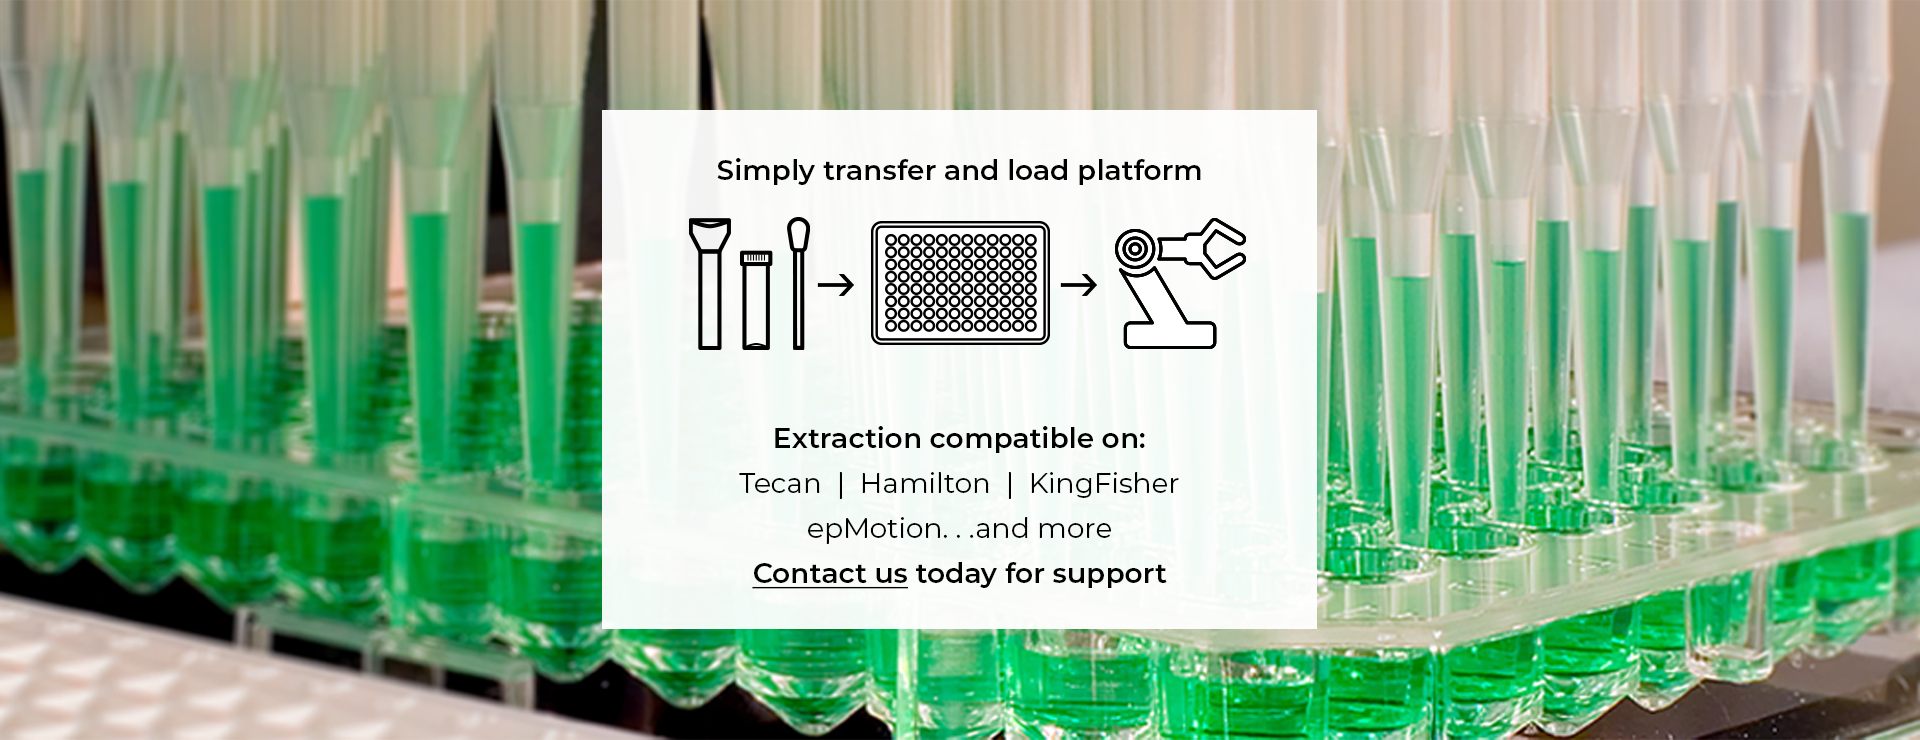 Simply transfer and load platform